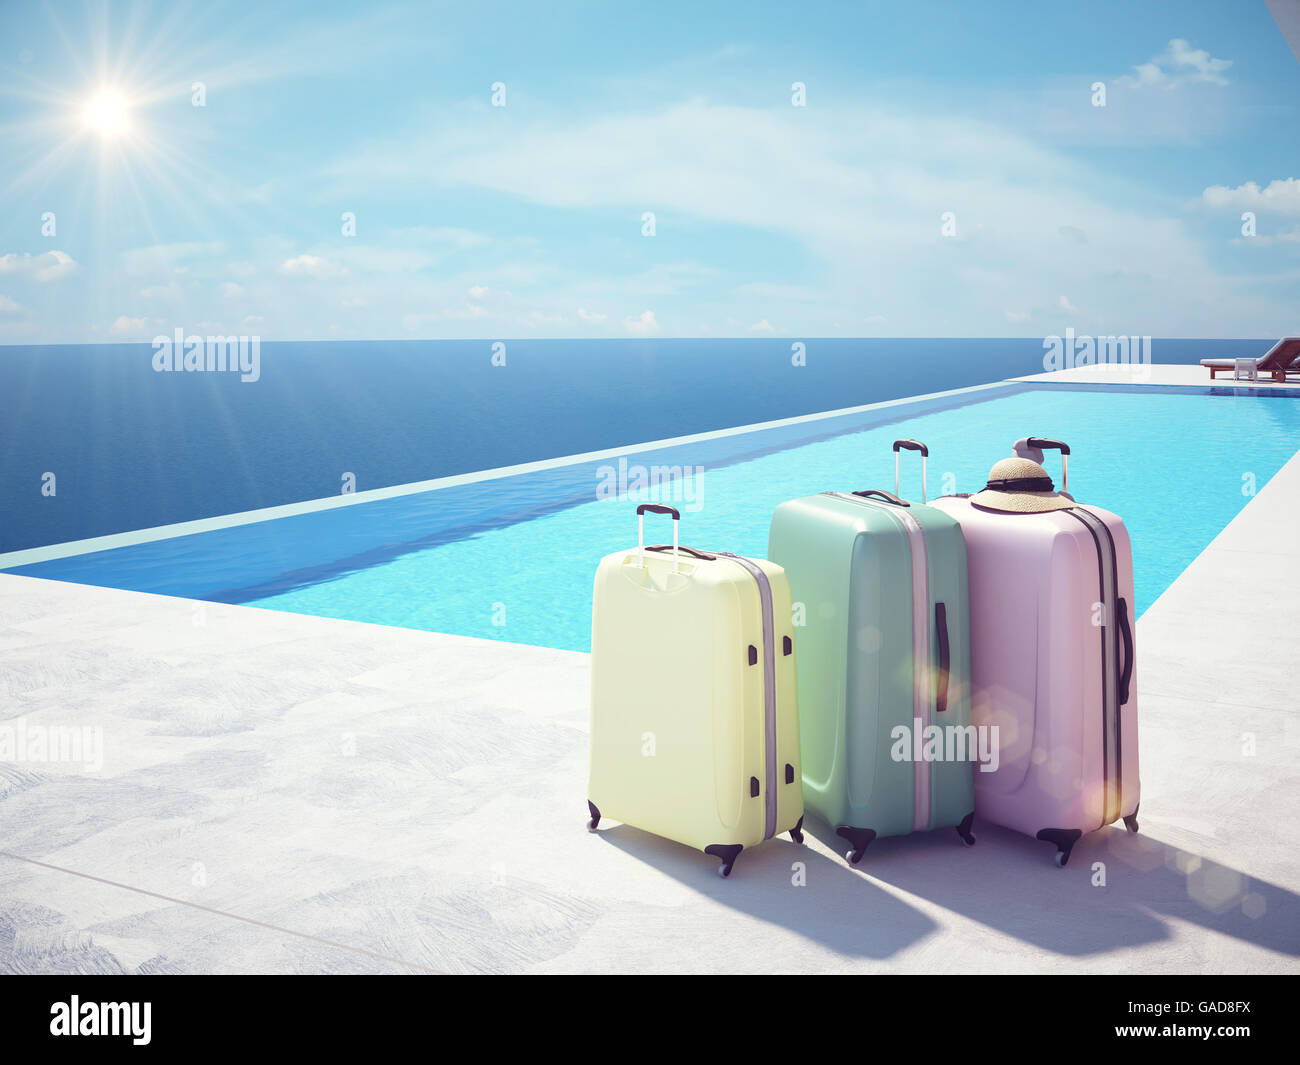 leaving the pool stock photos leaving the pool stock images alamy. Black Bedroom Furniture Sets. Home Design Ideas